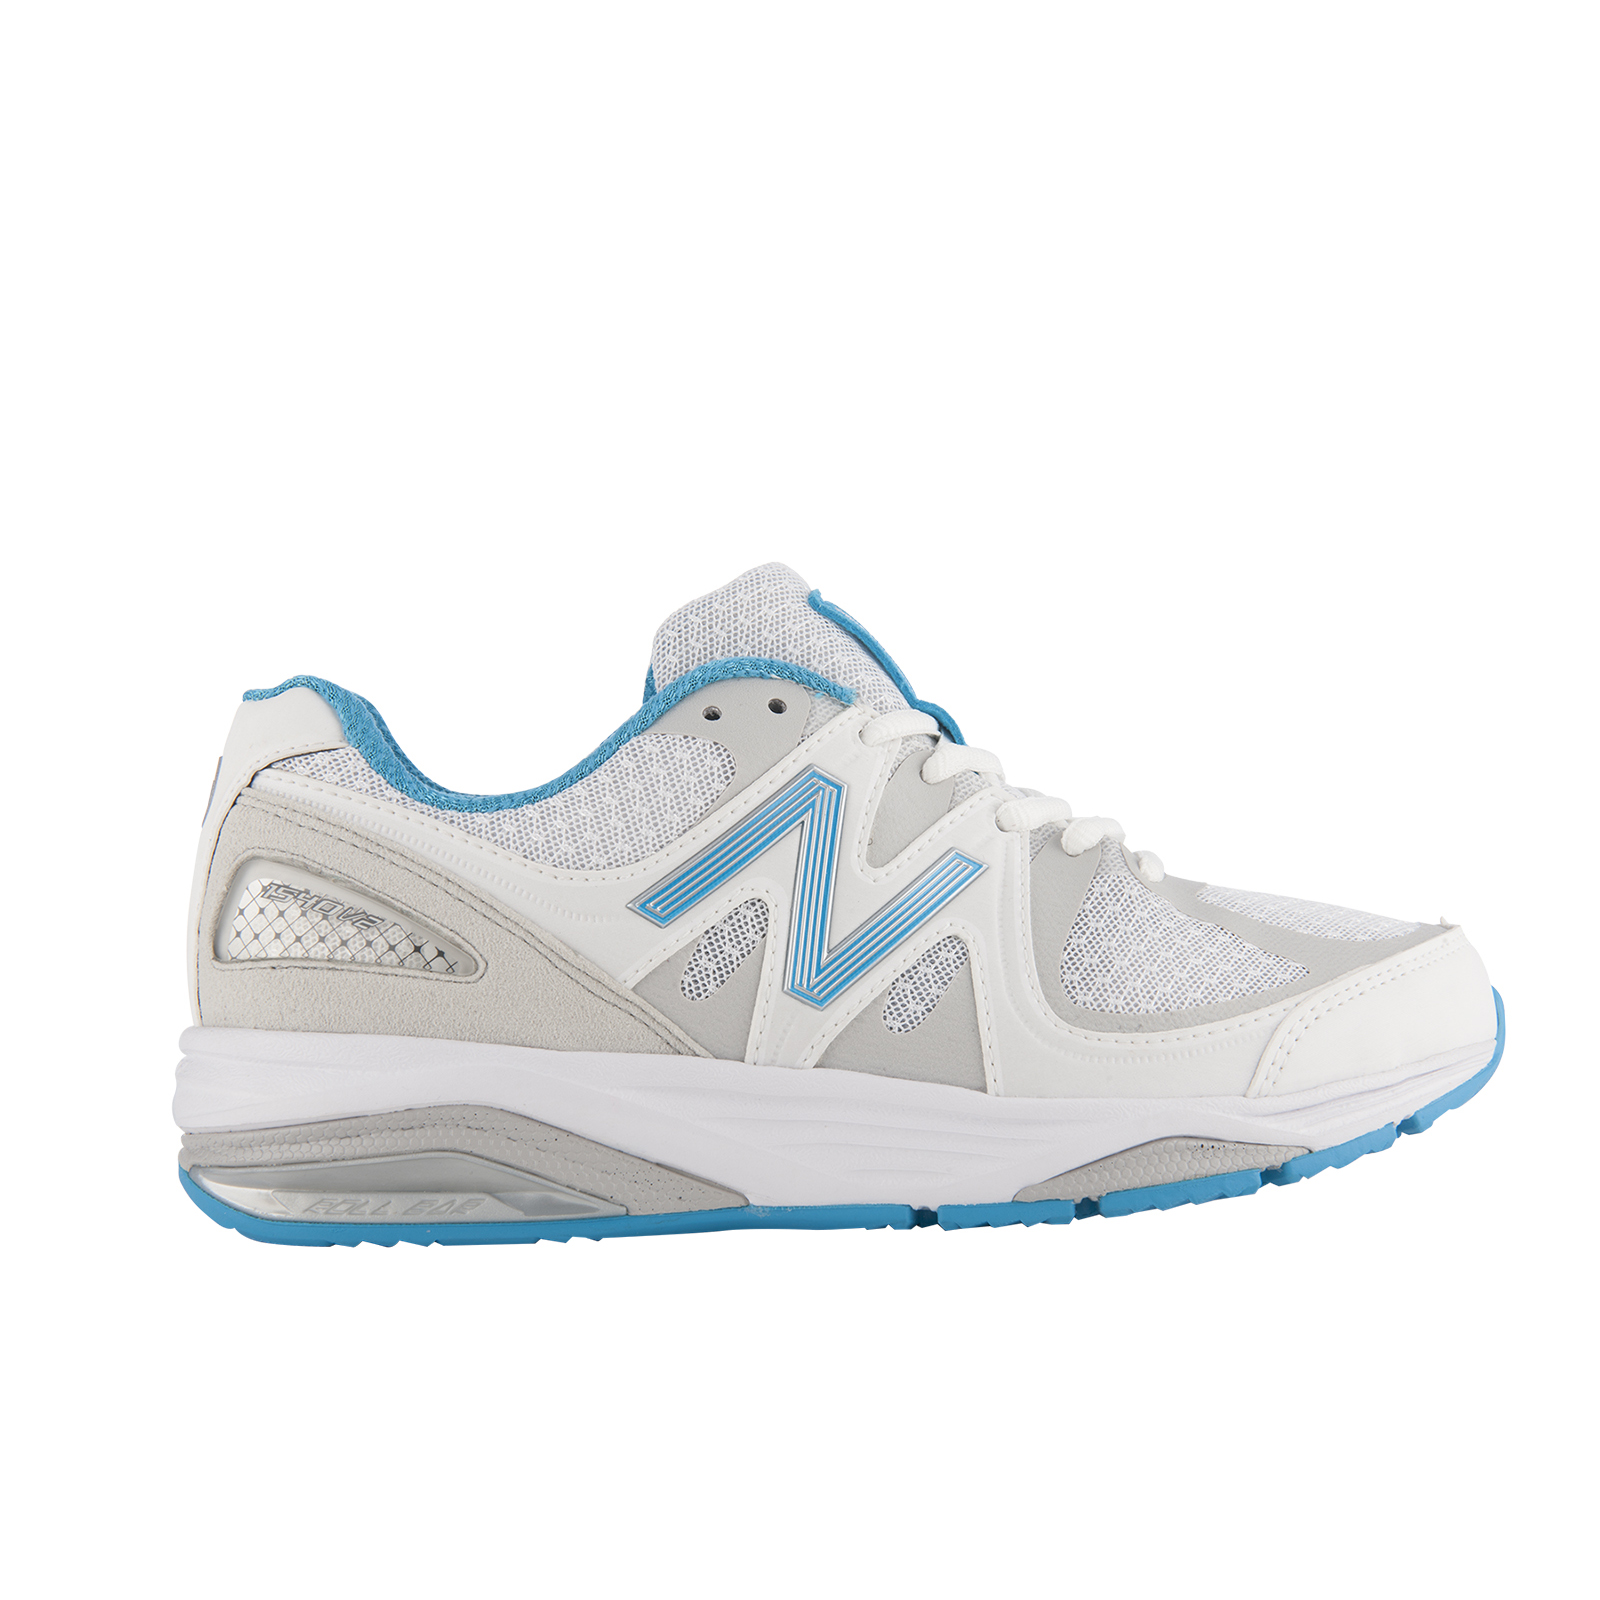 Specialized Running Shoe Stores Near Me